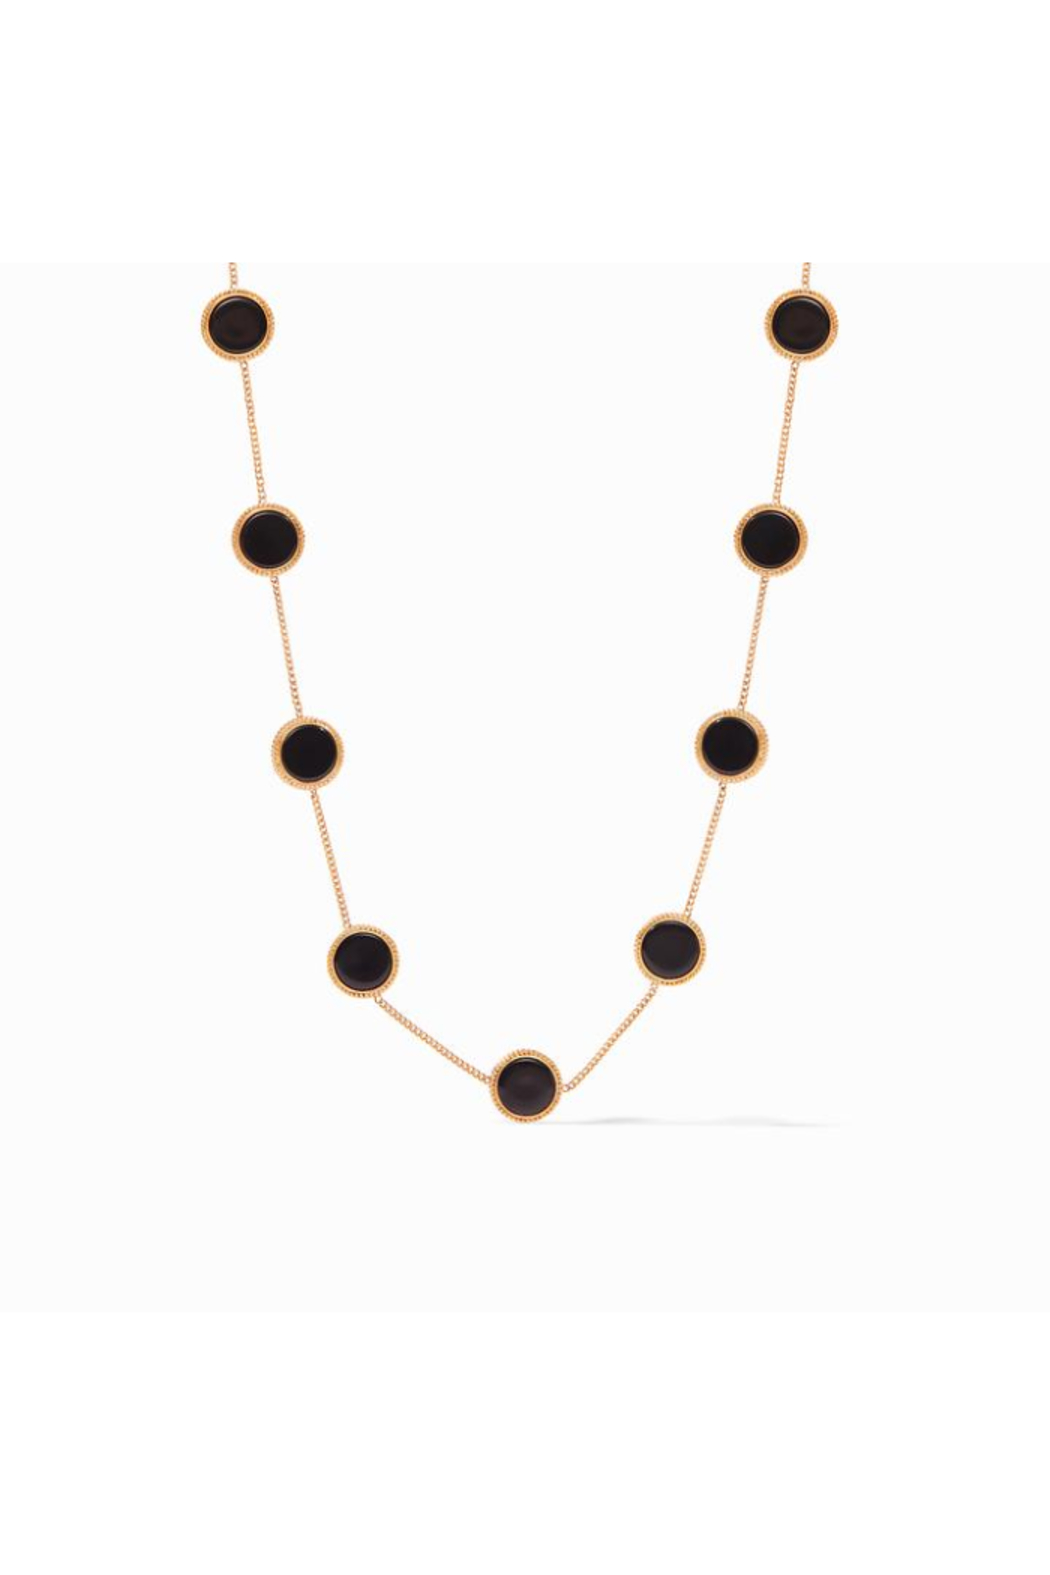 Julie Vos COIN DEMI STATION NECKLACE-BLACK ONYX - Front Cropped Image